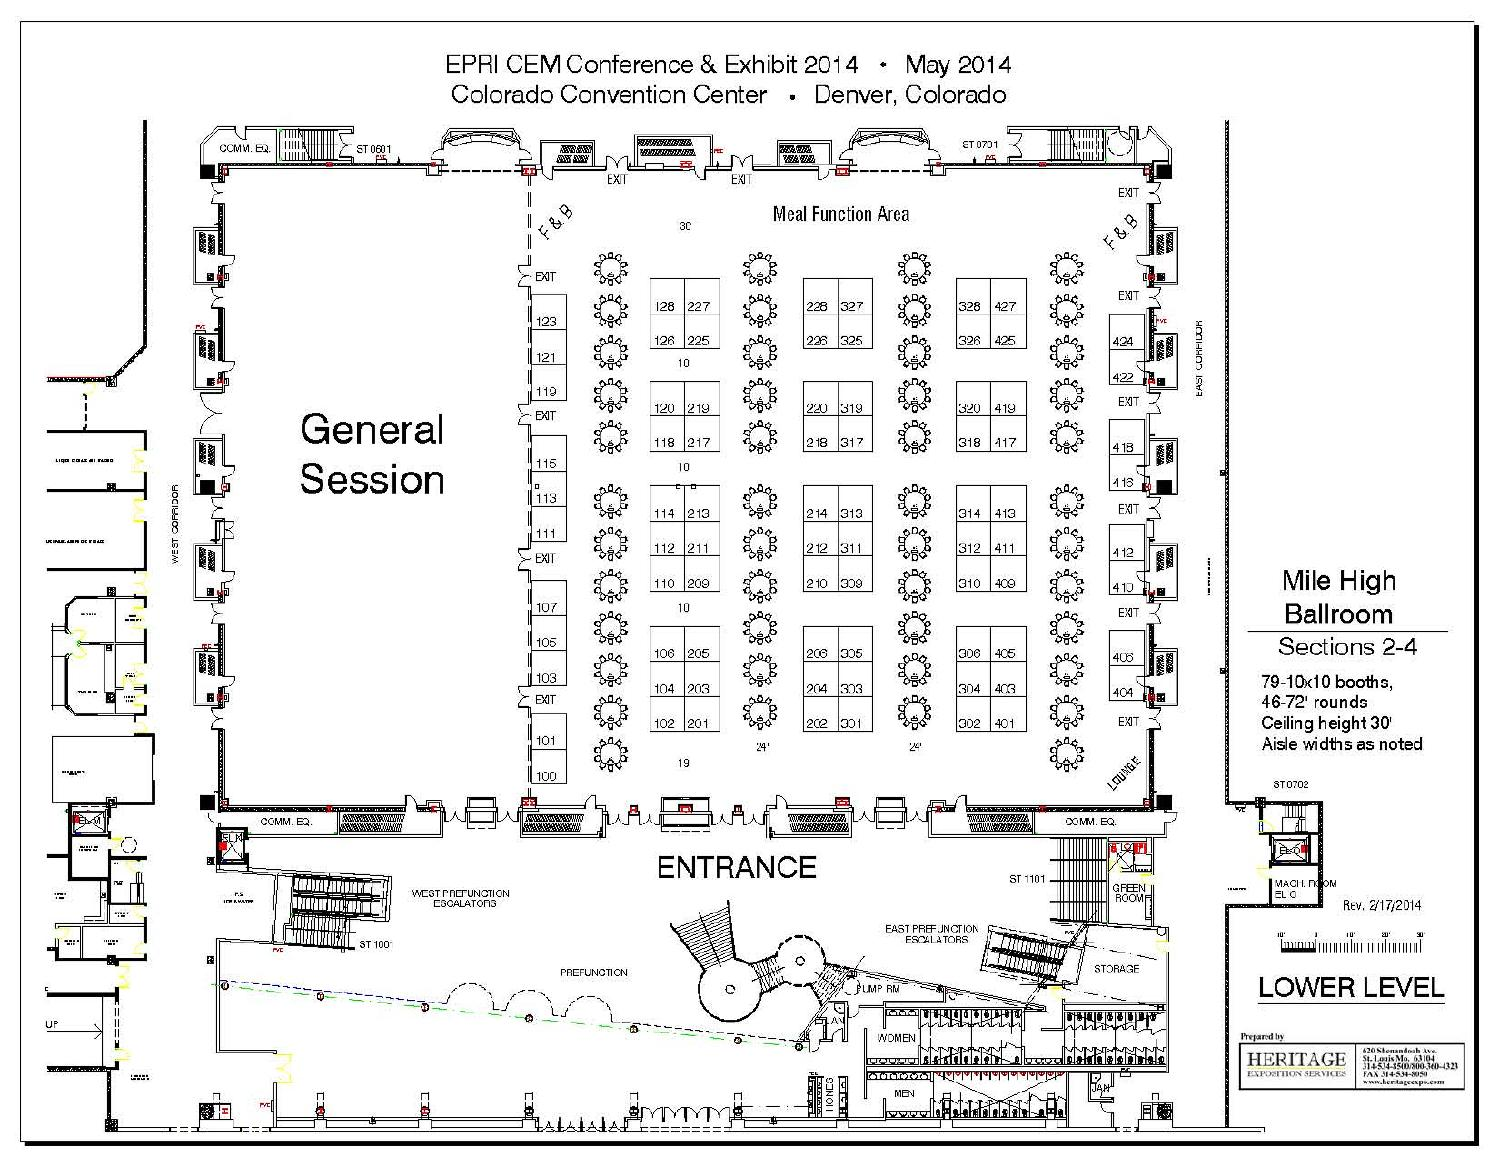 floorplan the exhibit hall floor plan is below or you can download it by clicking here